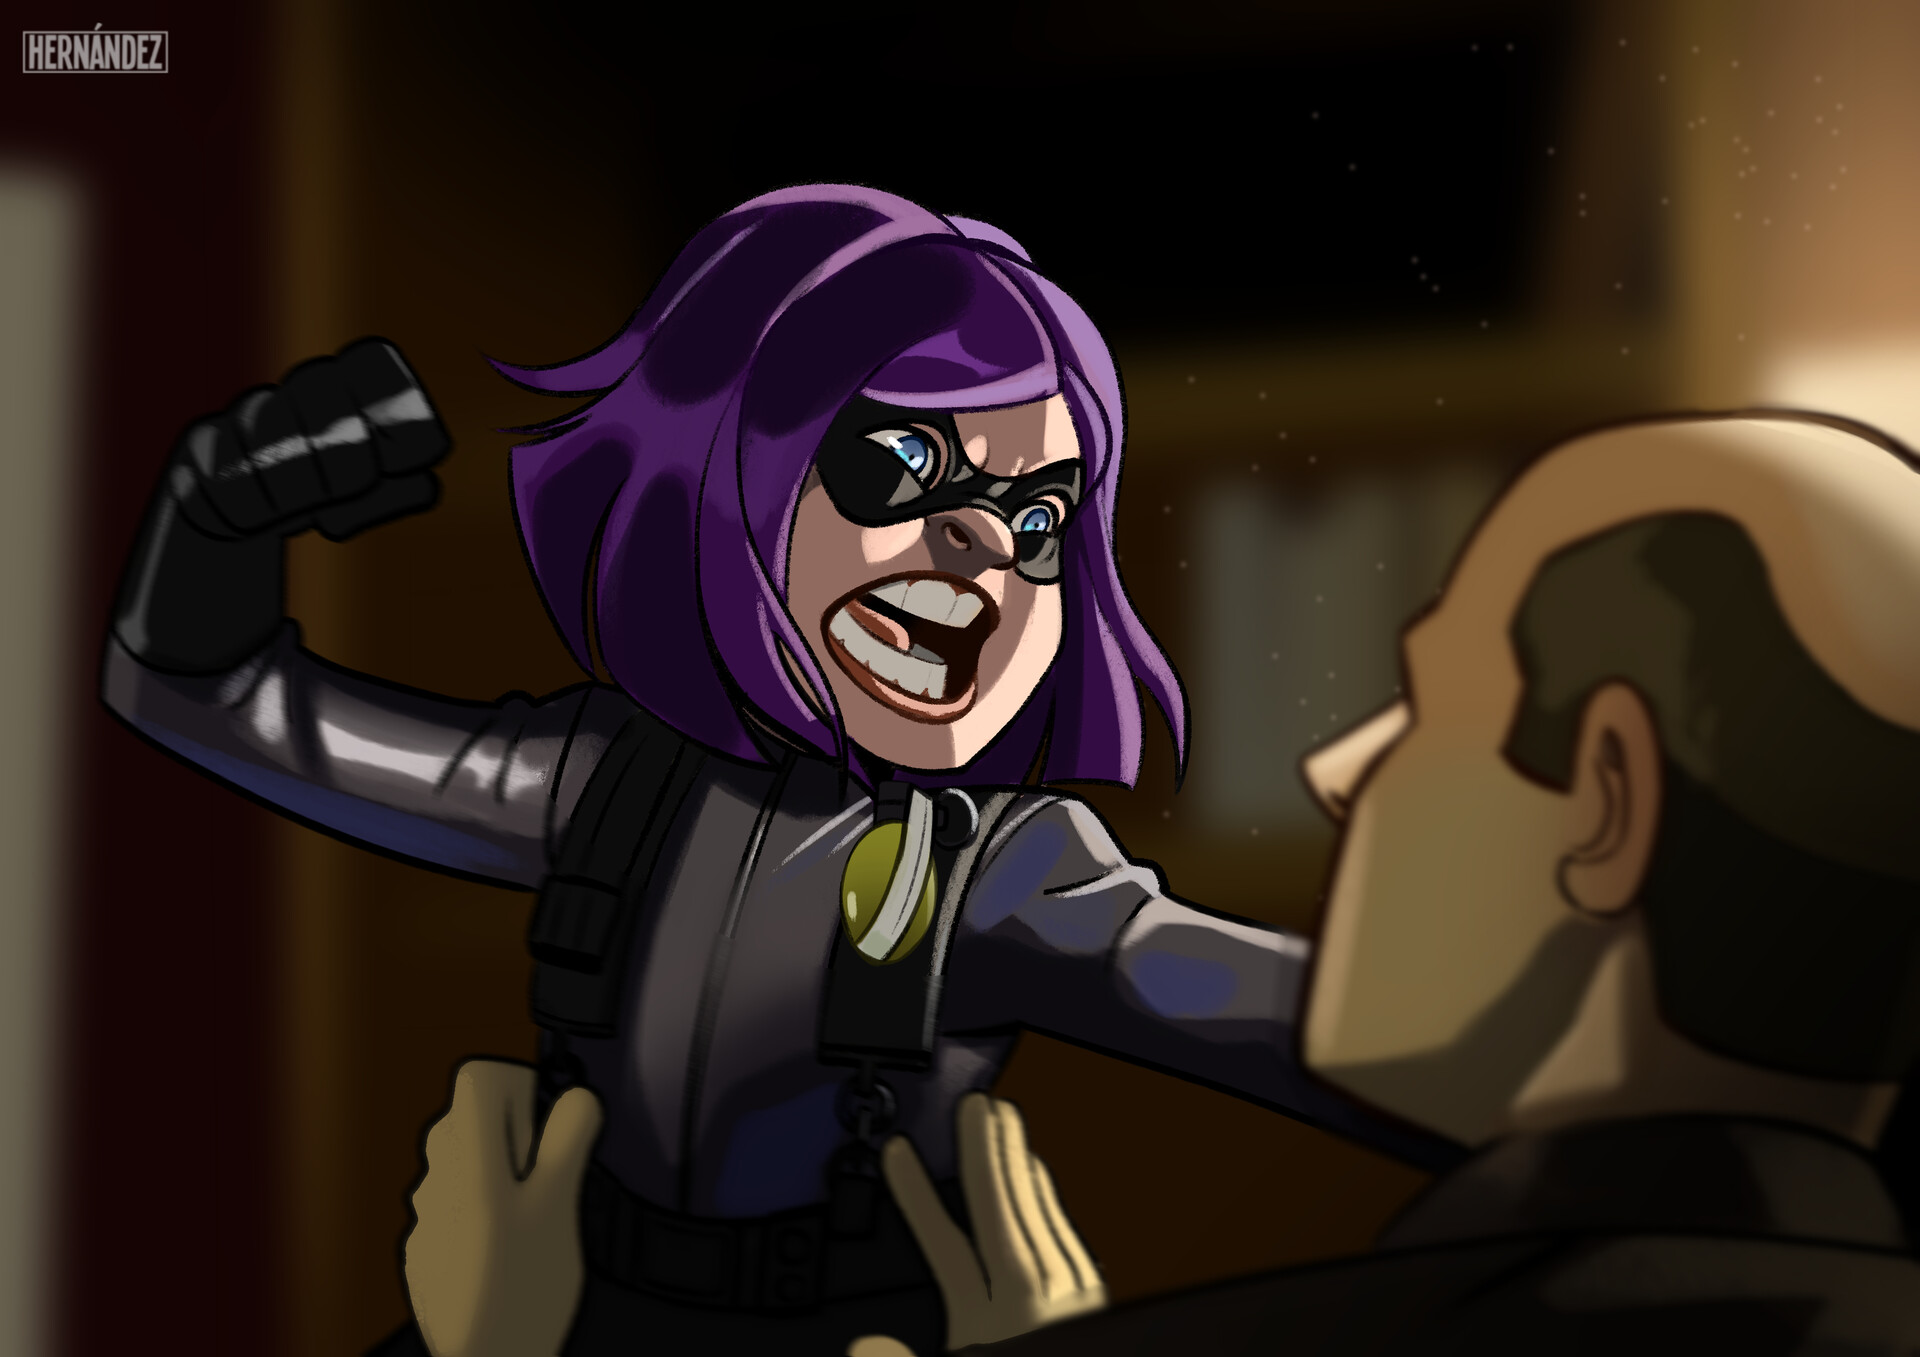 Kickass (Hitgirl)